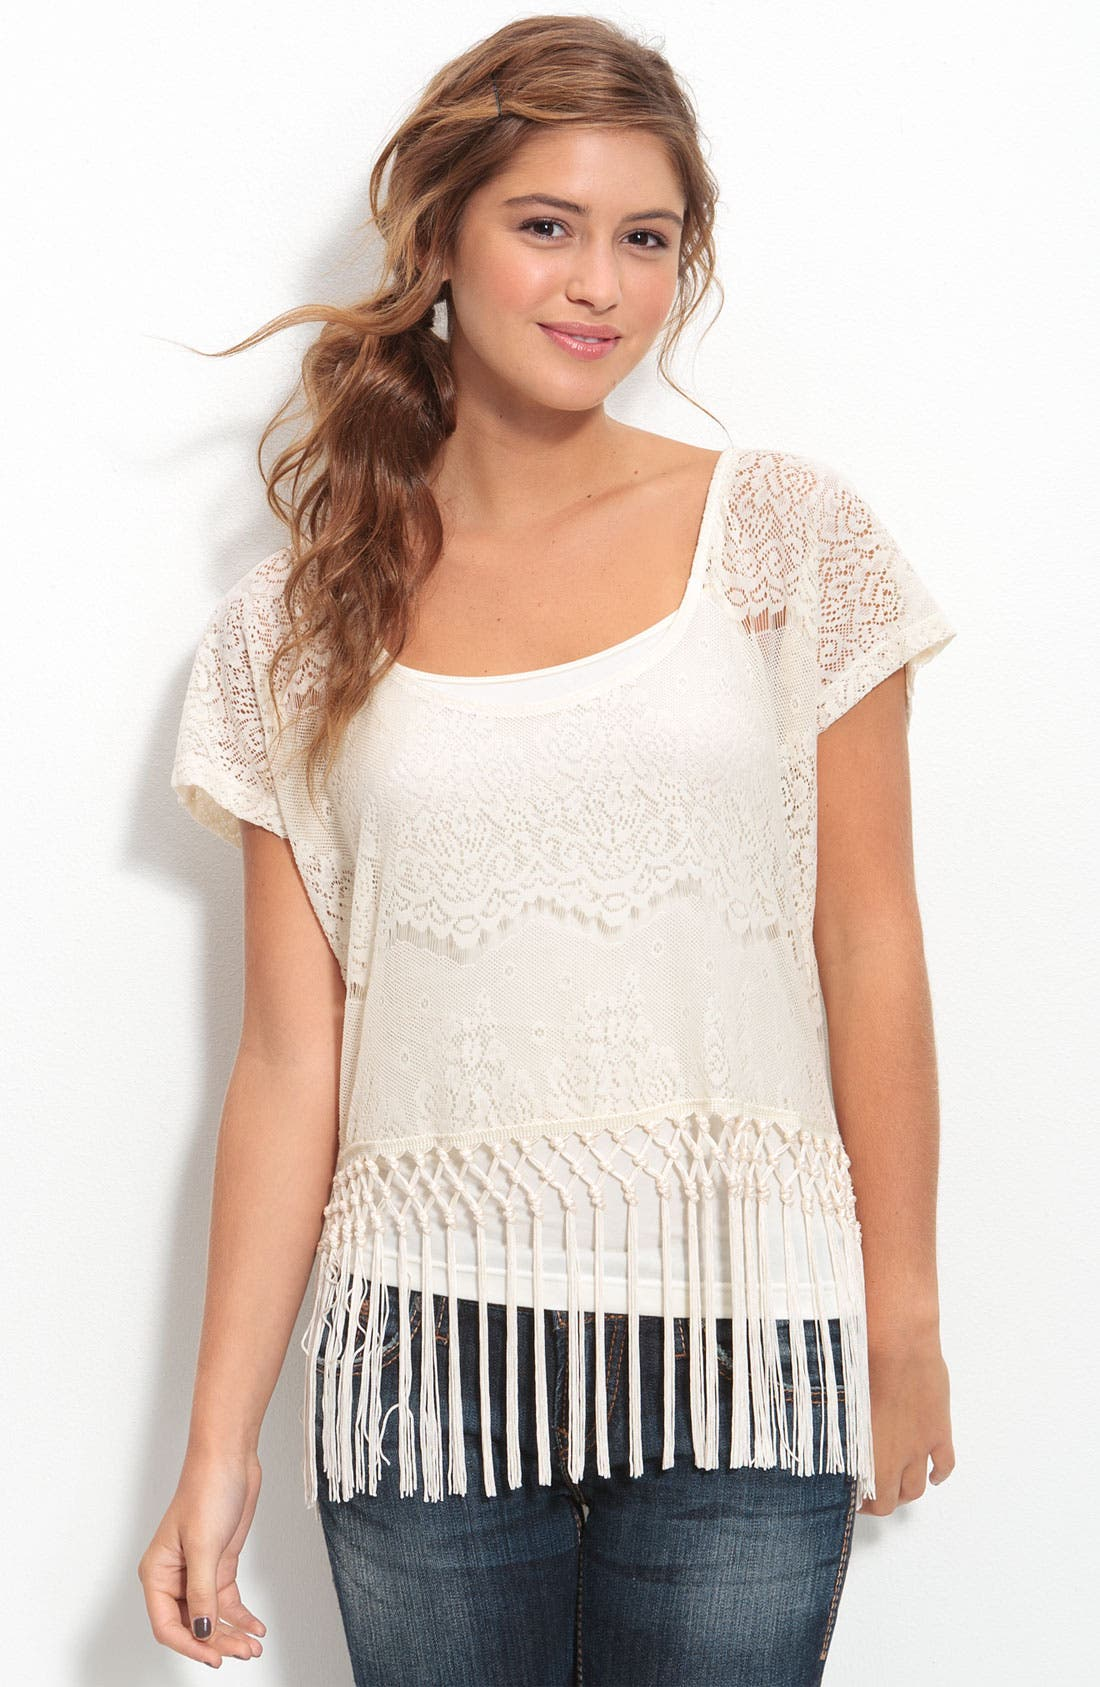 Main Image - Fire Scoop Back Lace Tee with Fringe Trim (Juniors)